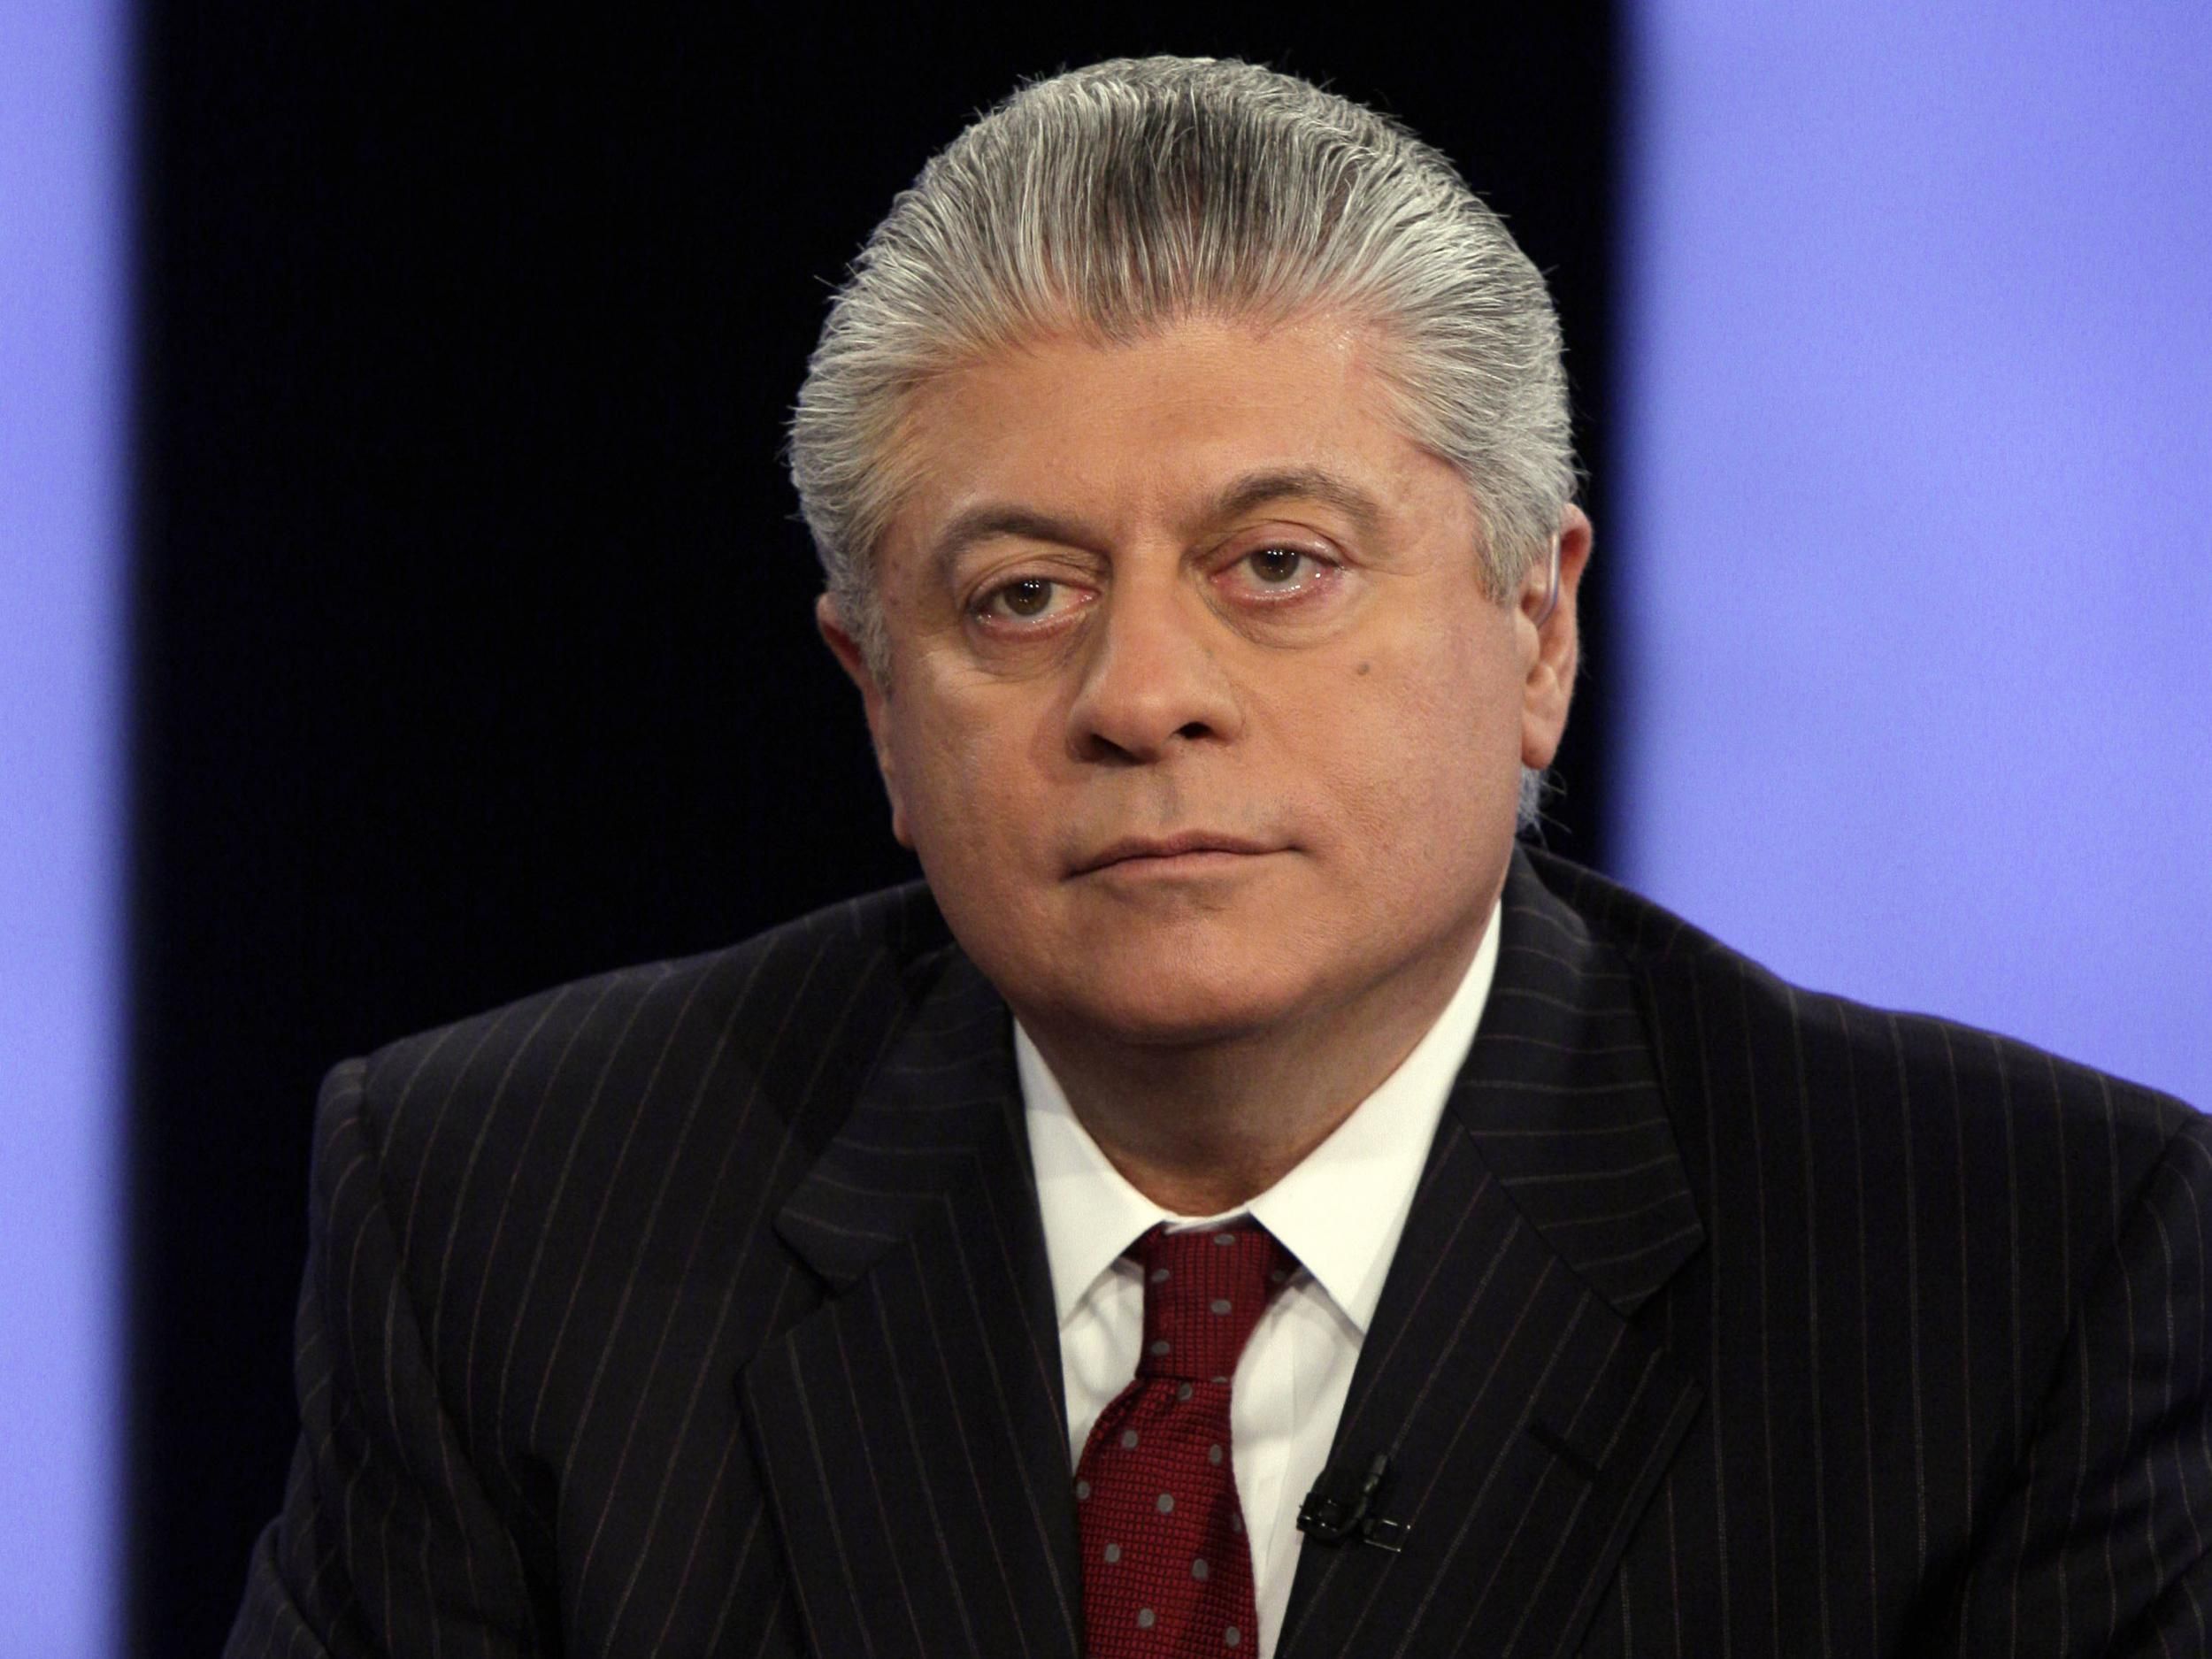 Image result for Andrew Napolitano, pictures